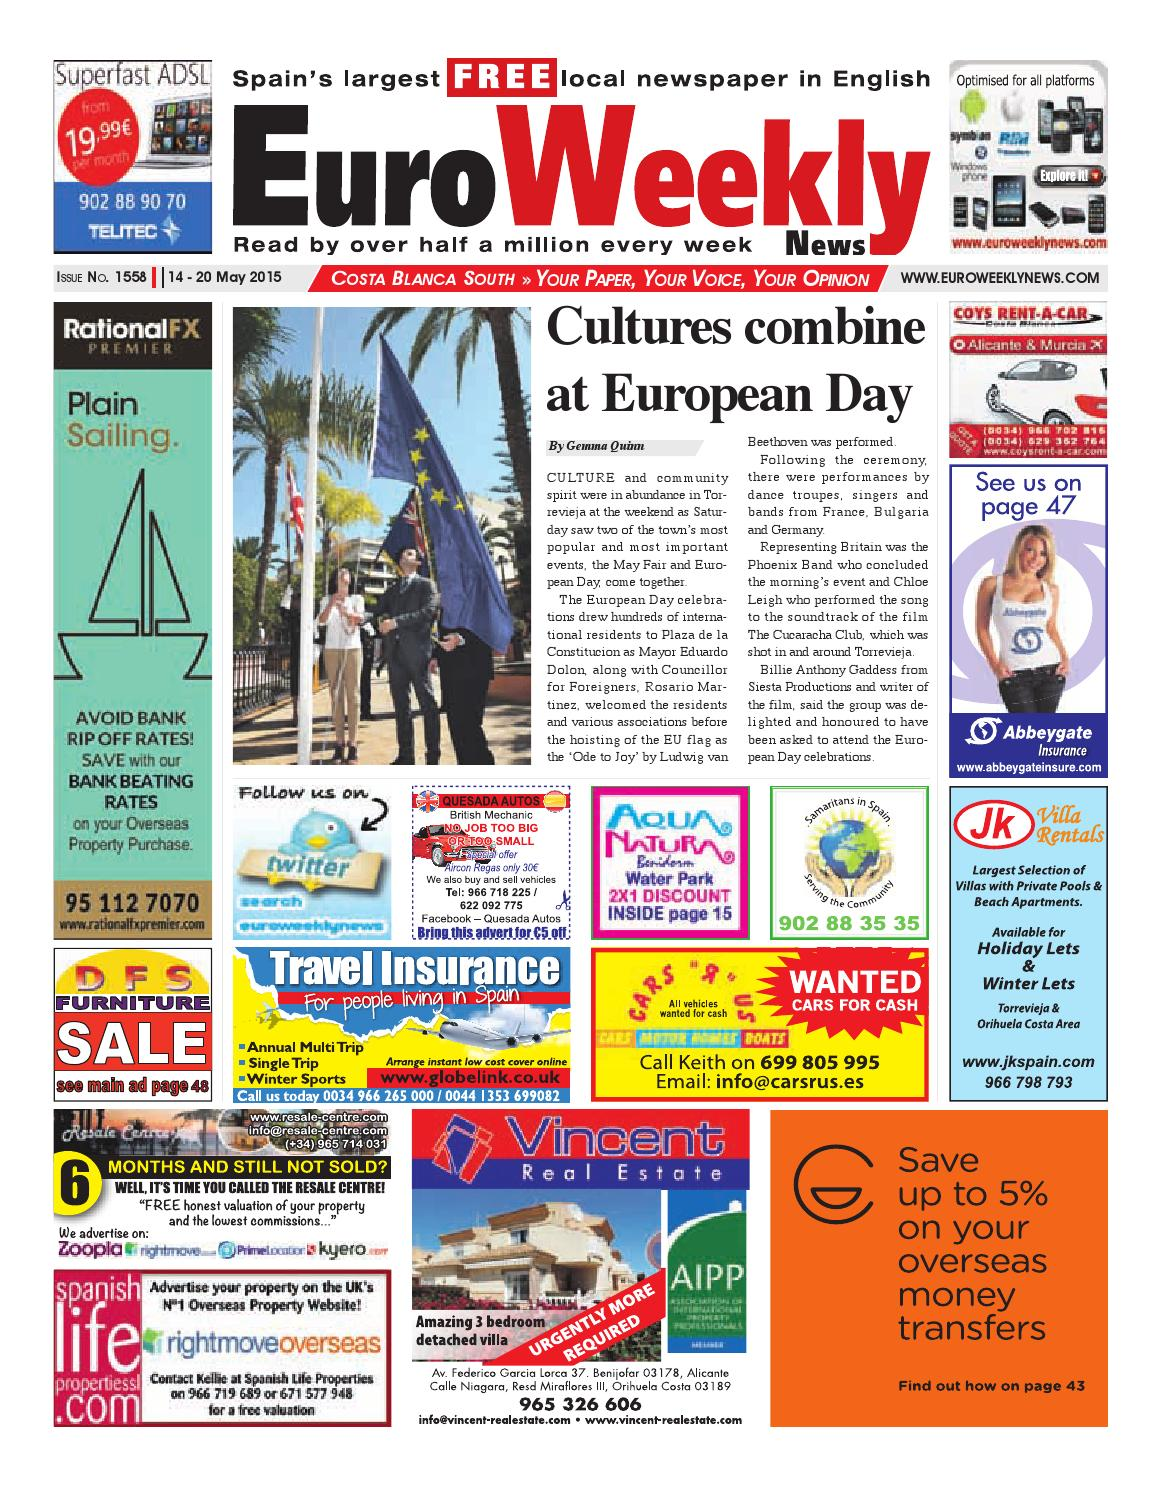 41a75c4dcf9a7 Euro Weekly News - Costa Blanca South 14 - 20 May 2015 Issue 1558 by Euro  Weekly News Media S.A. - issuu